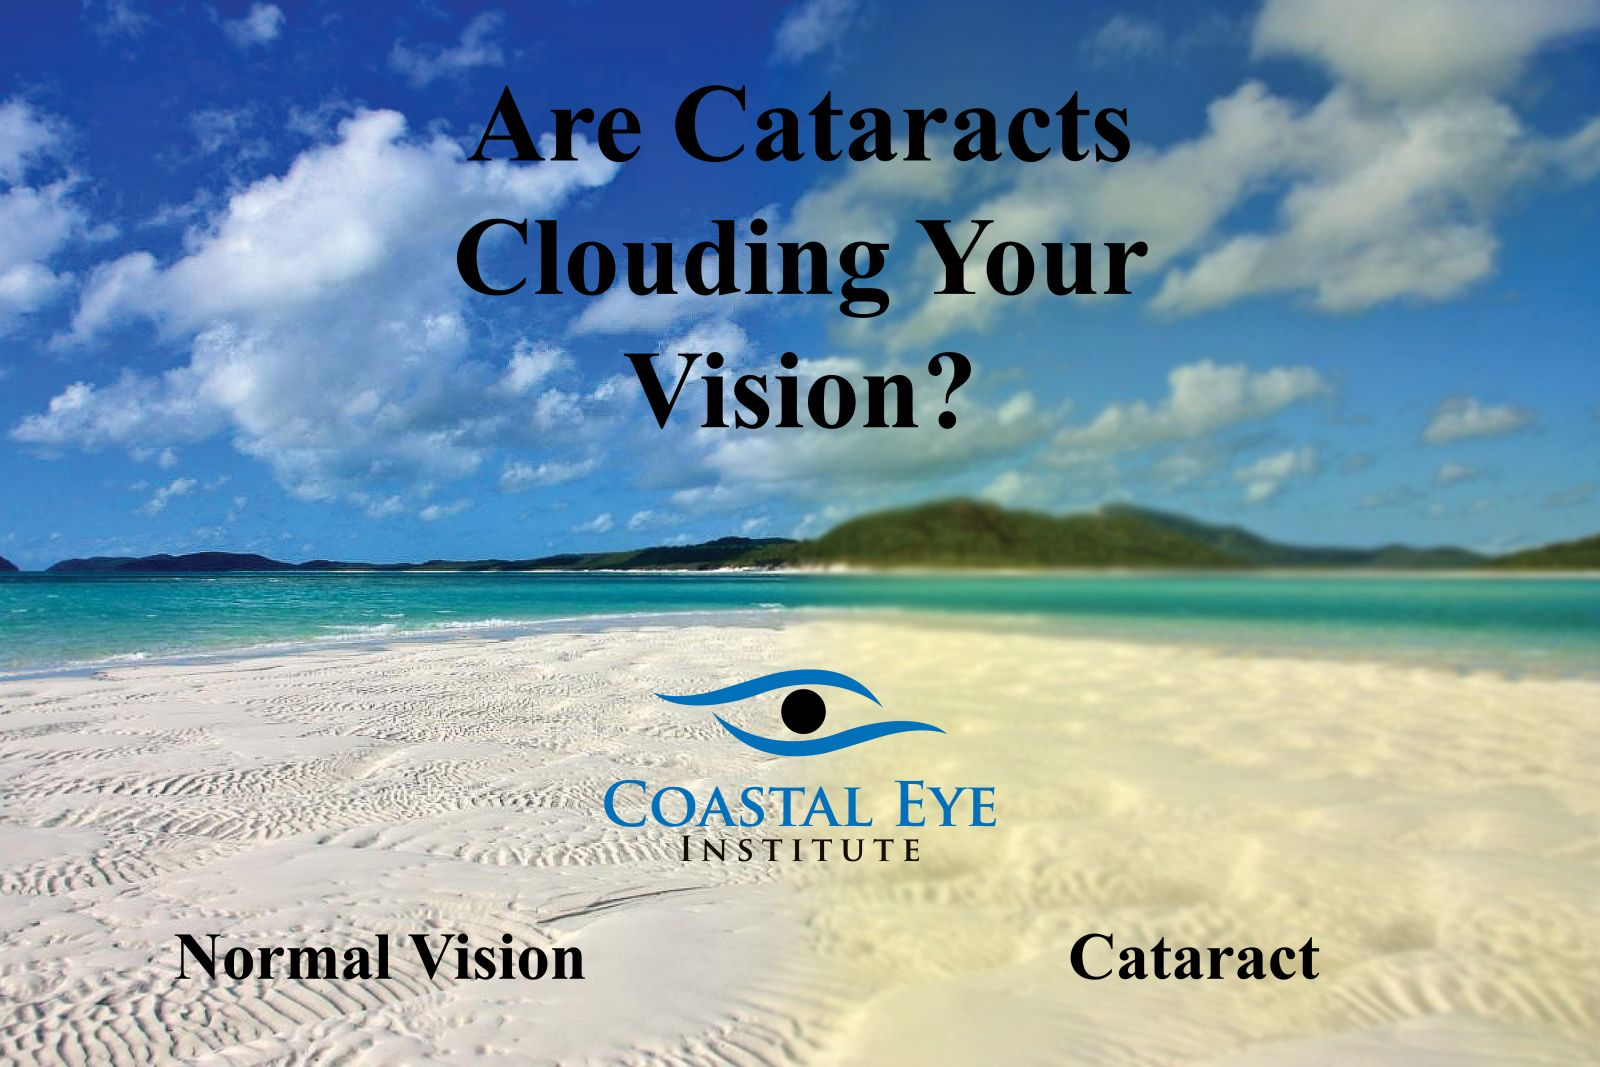 Are cataracts clouding your vision image